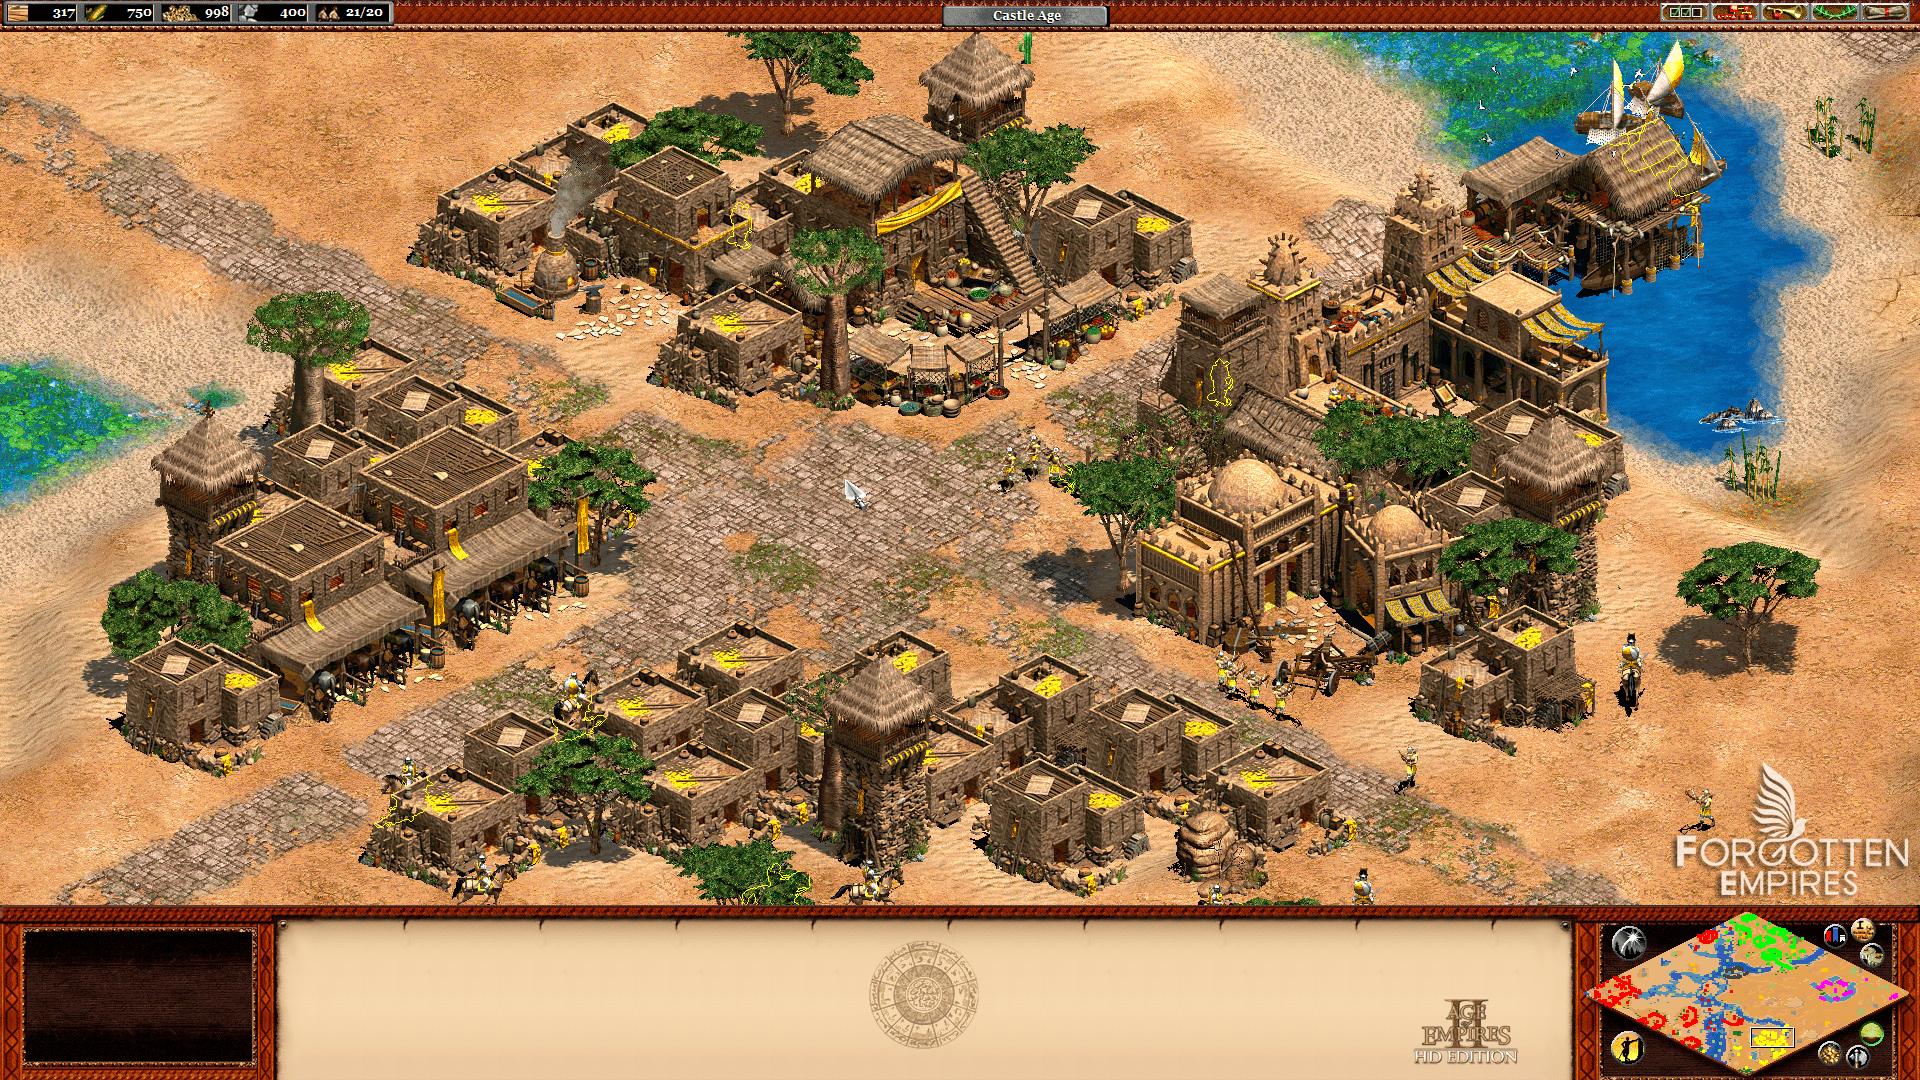 http://www.forgottenempires.net/wp-content/uploads/aoe2_campaign_mali_ally_village.png